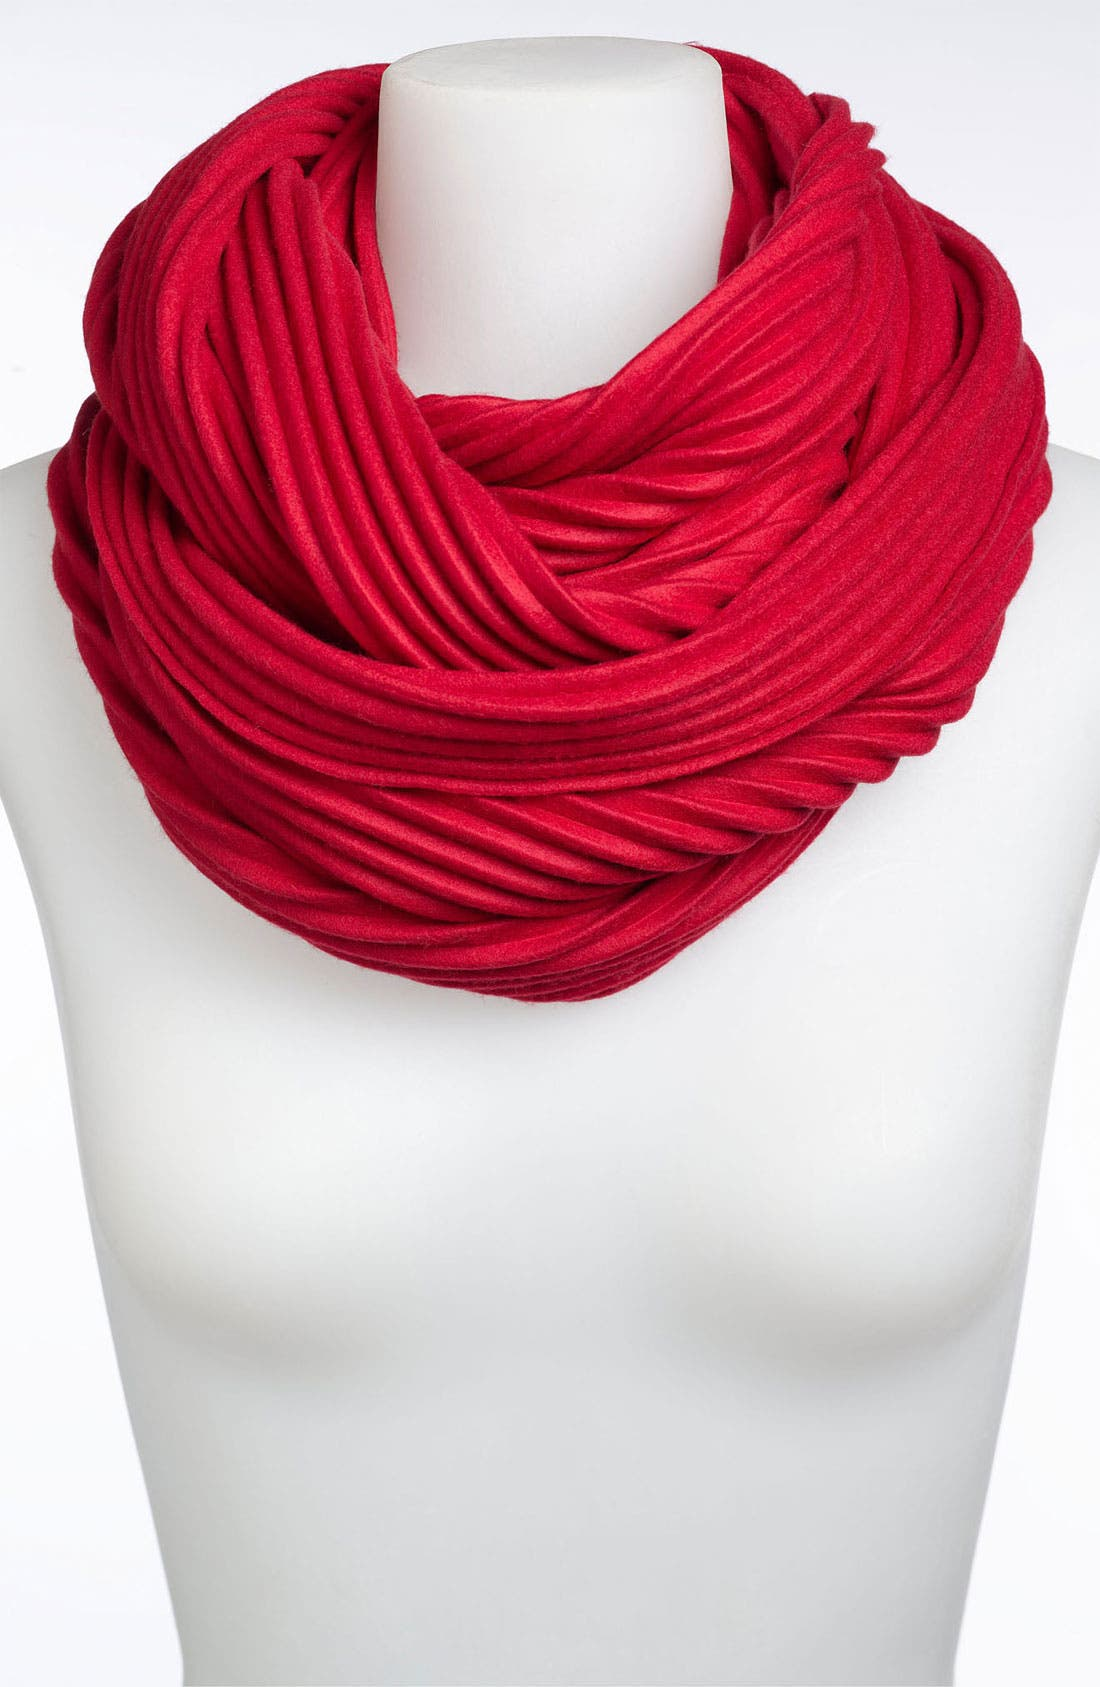 Alternate Image 1 Selected - Design House Stockholm 'Pleece' Infinity Scarf